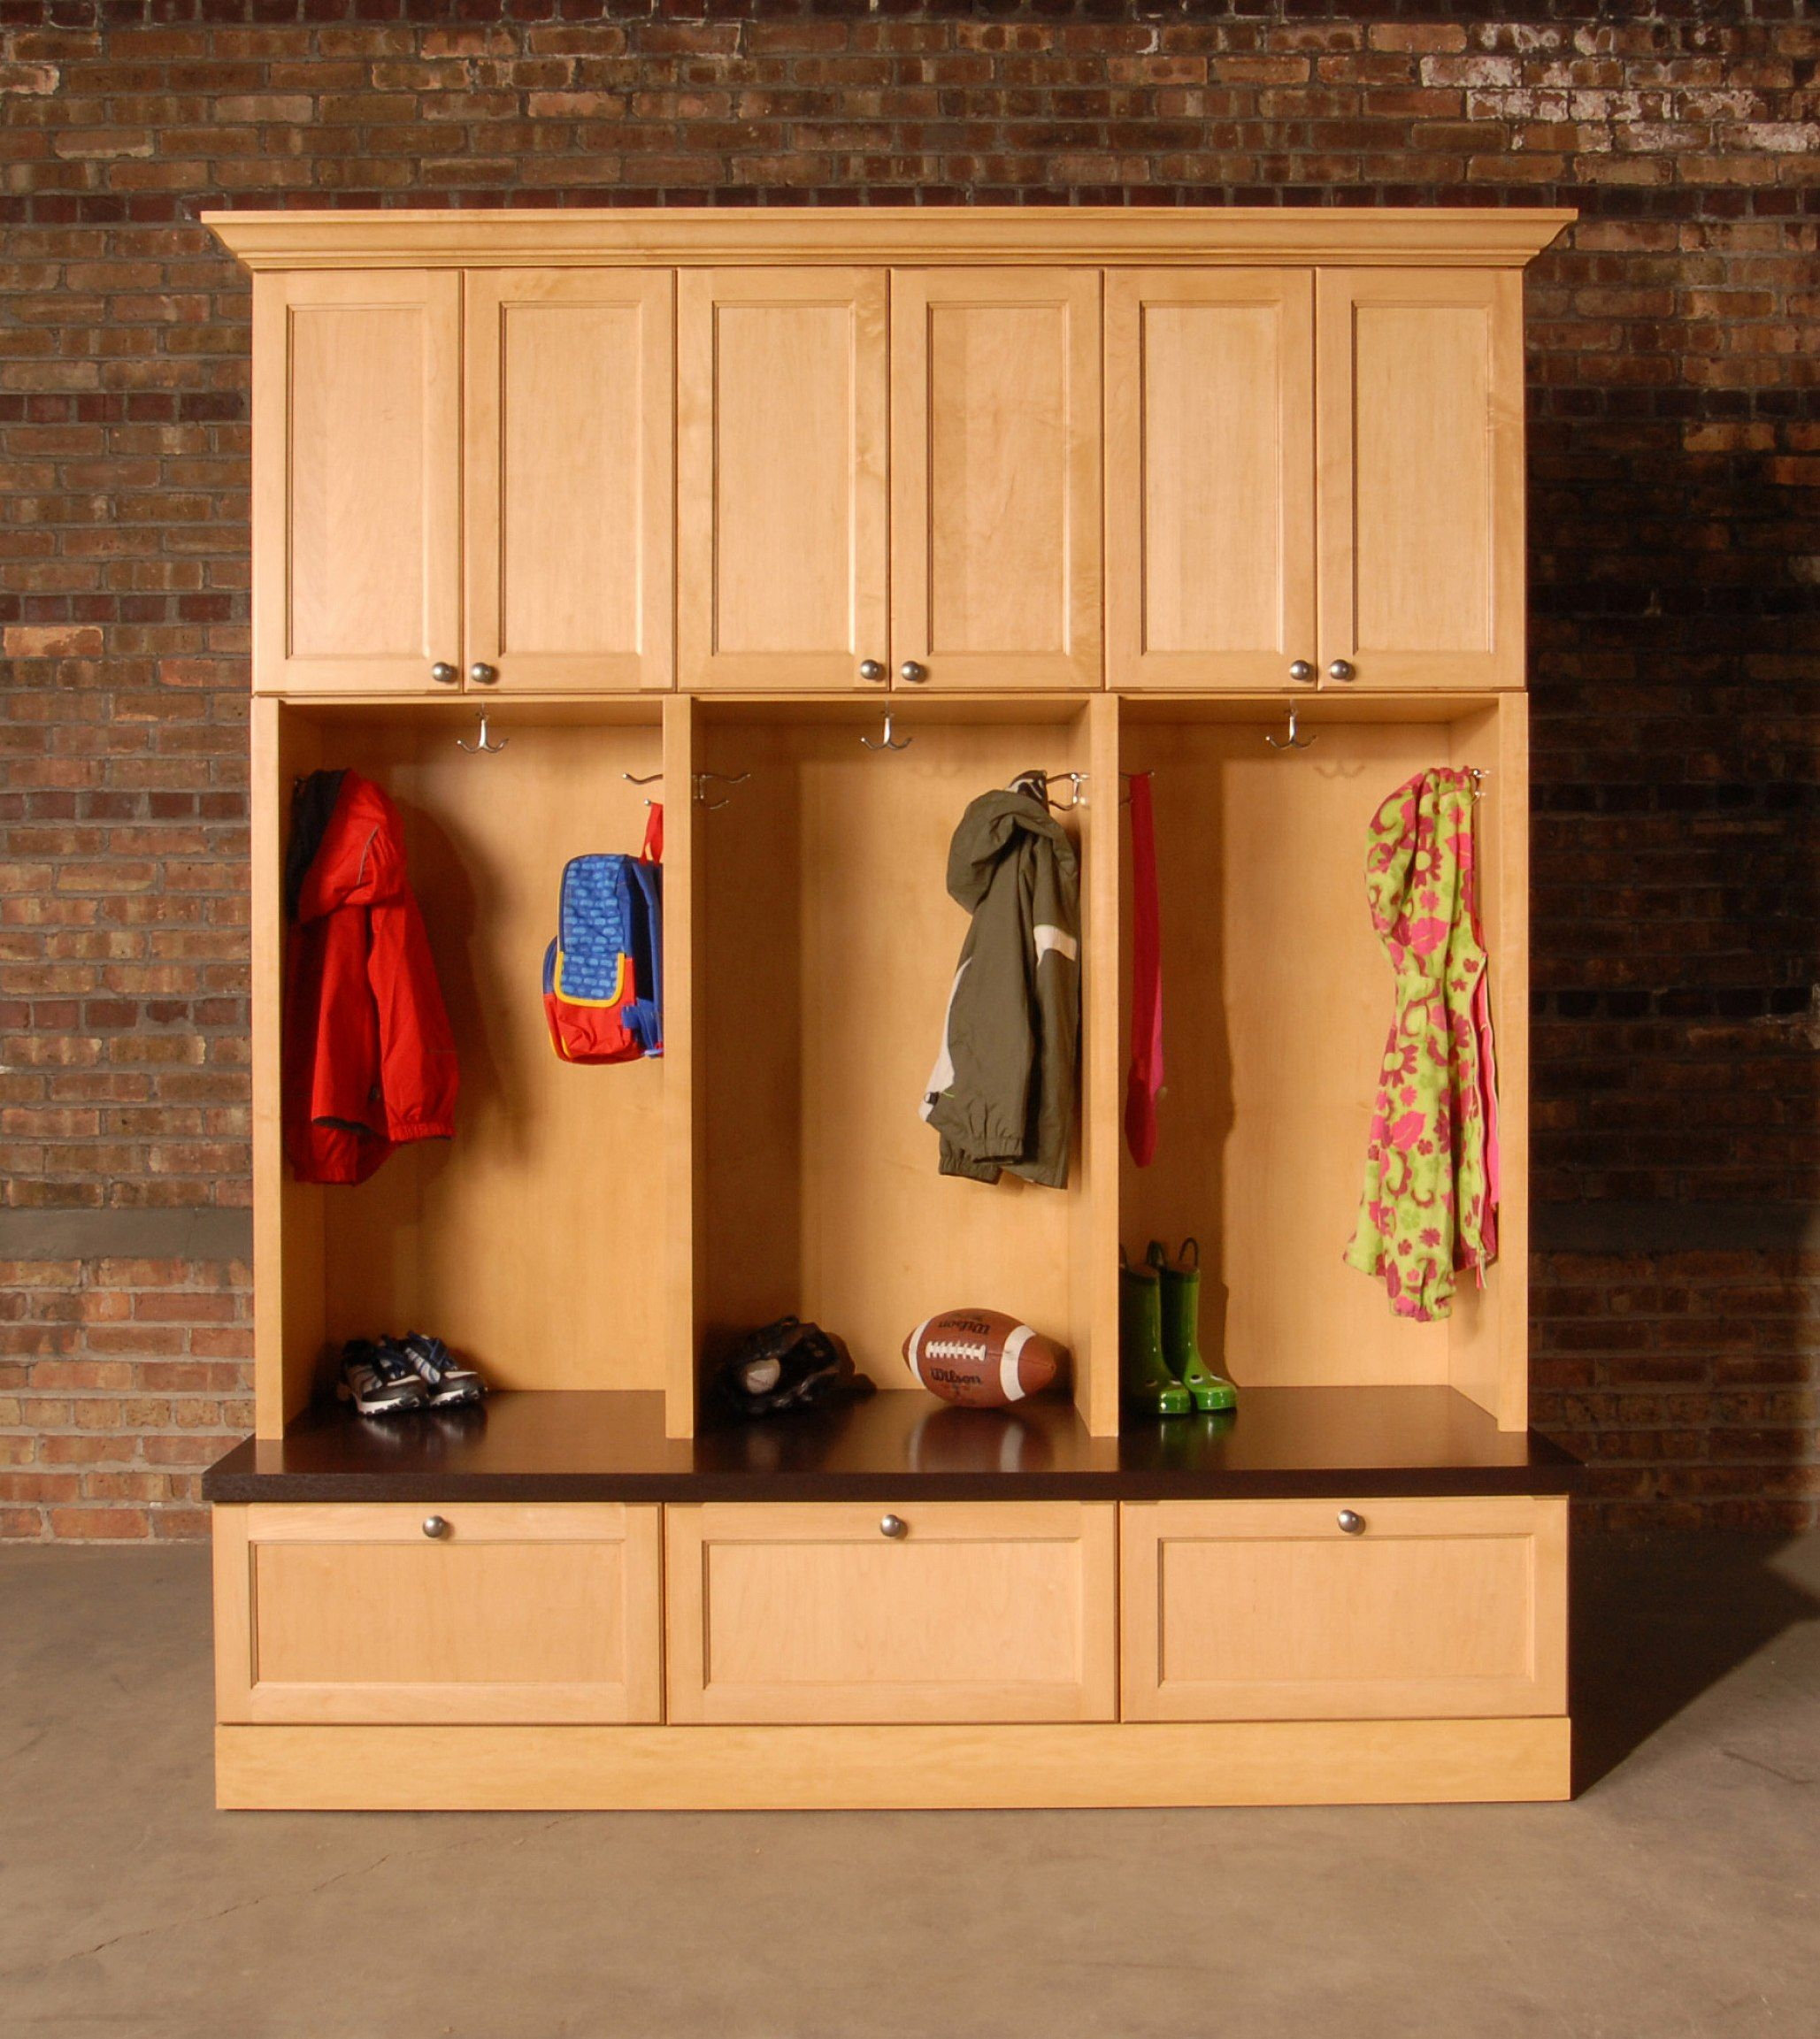 Original Wooden Lockers For Home Mudroom